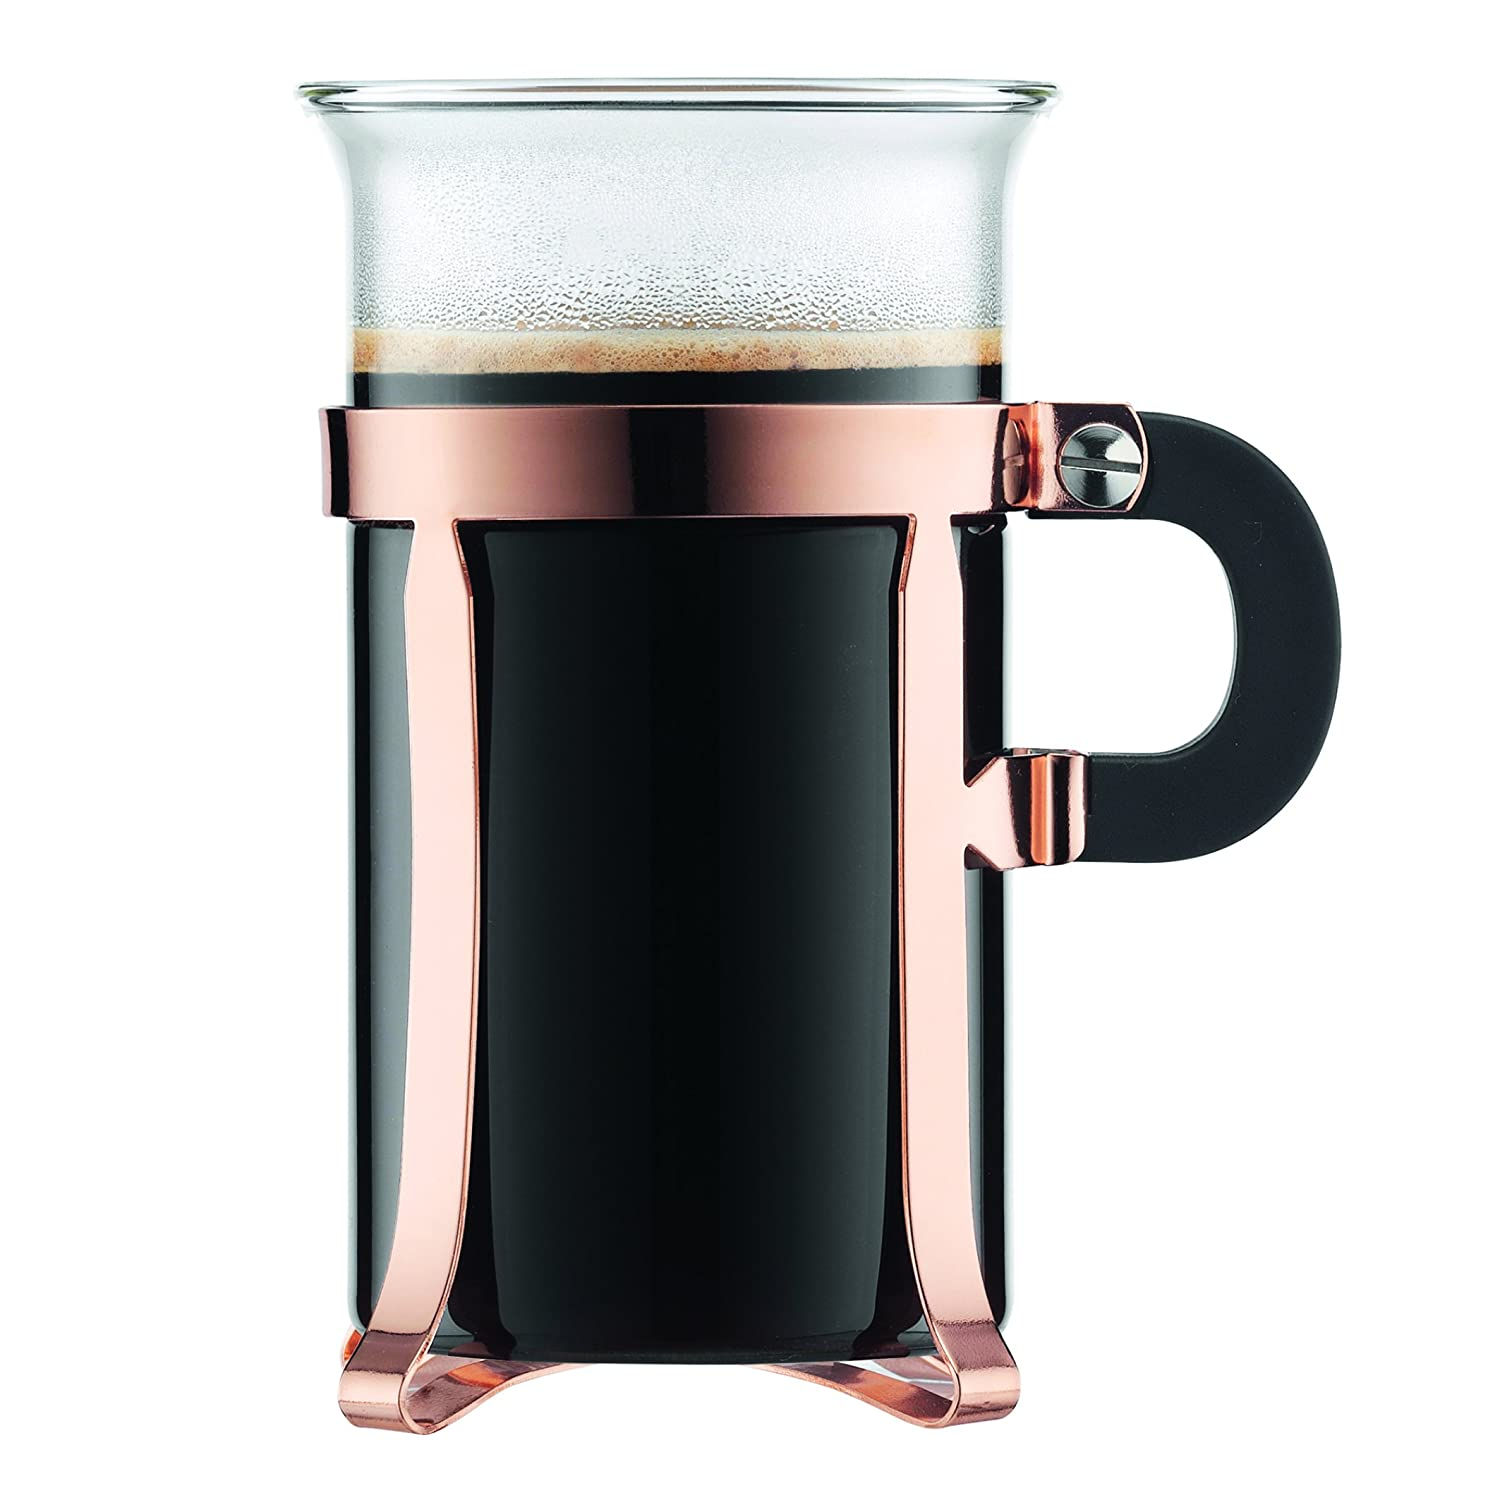 Bodum french press replacement glass - Amazon Com Bodum Chambord Classic 2 Piece Coffee Glass 10 Oz Copper Kitchen Dining